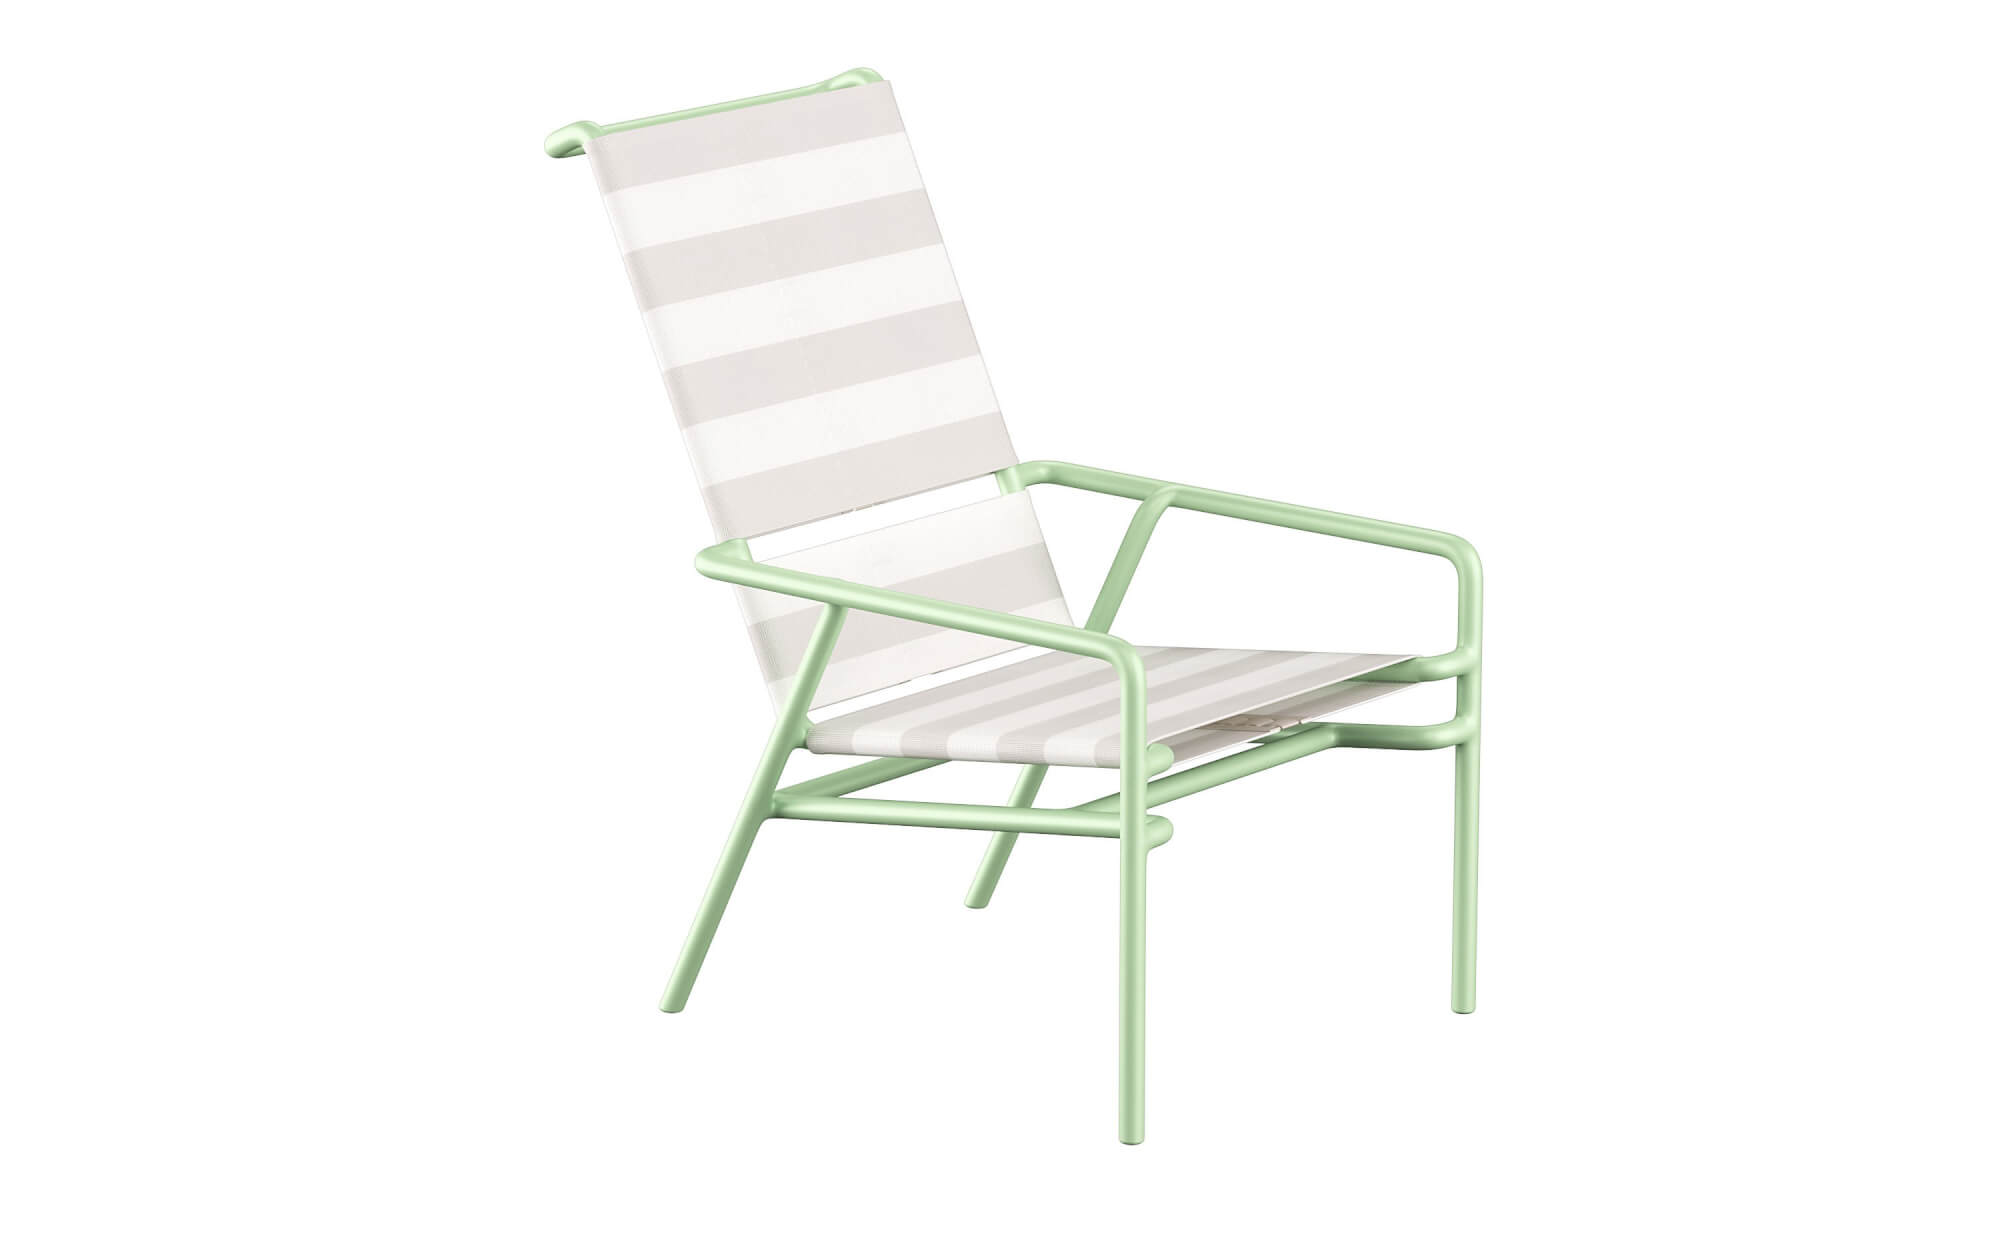 BAYWATCH (KARTELL) - Chairs